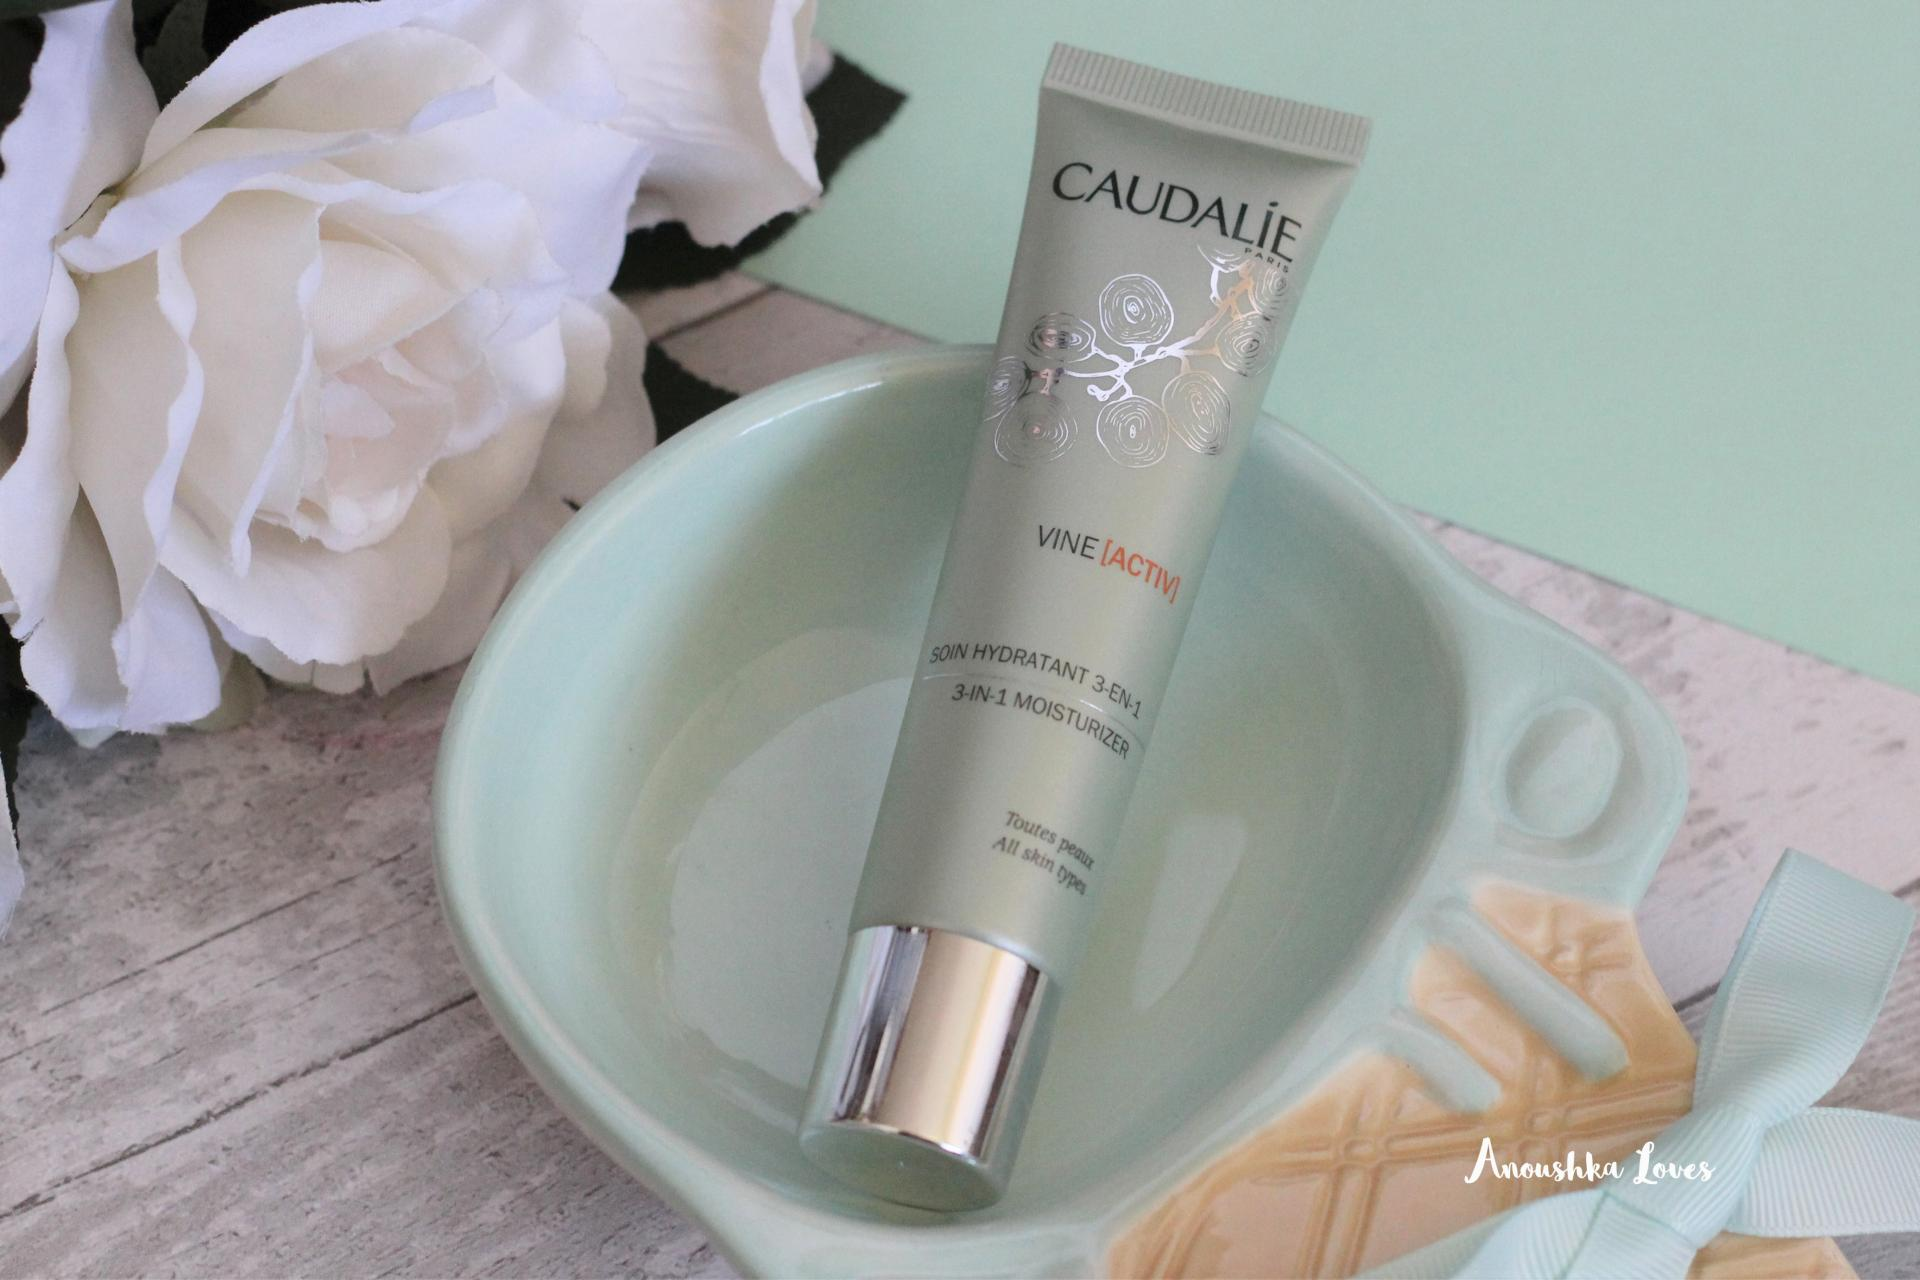 Caudalie VineActiv Collection 3 in 1 Moisturiser